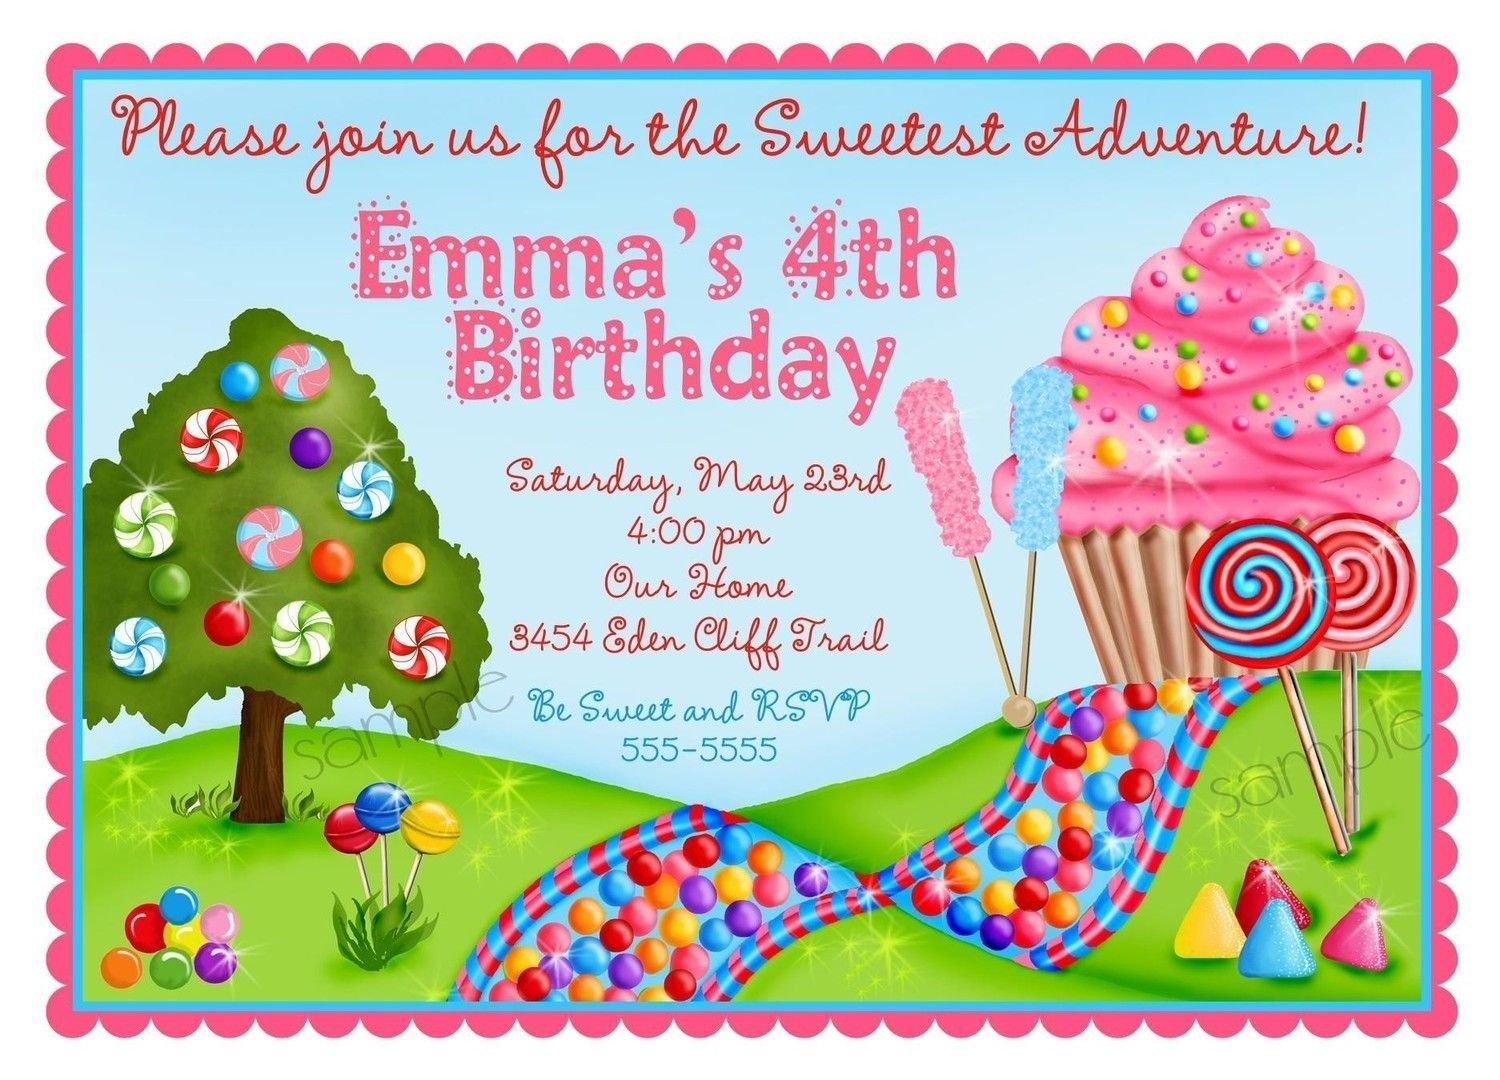 candyland birthday party invitations, cupcake, oh sweet candy land, Birthday invitations